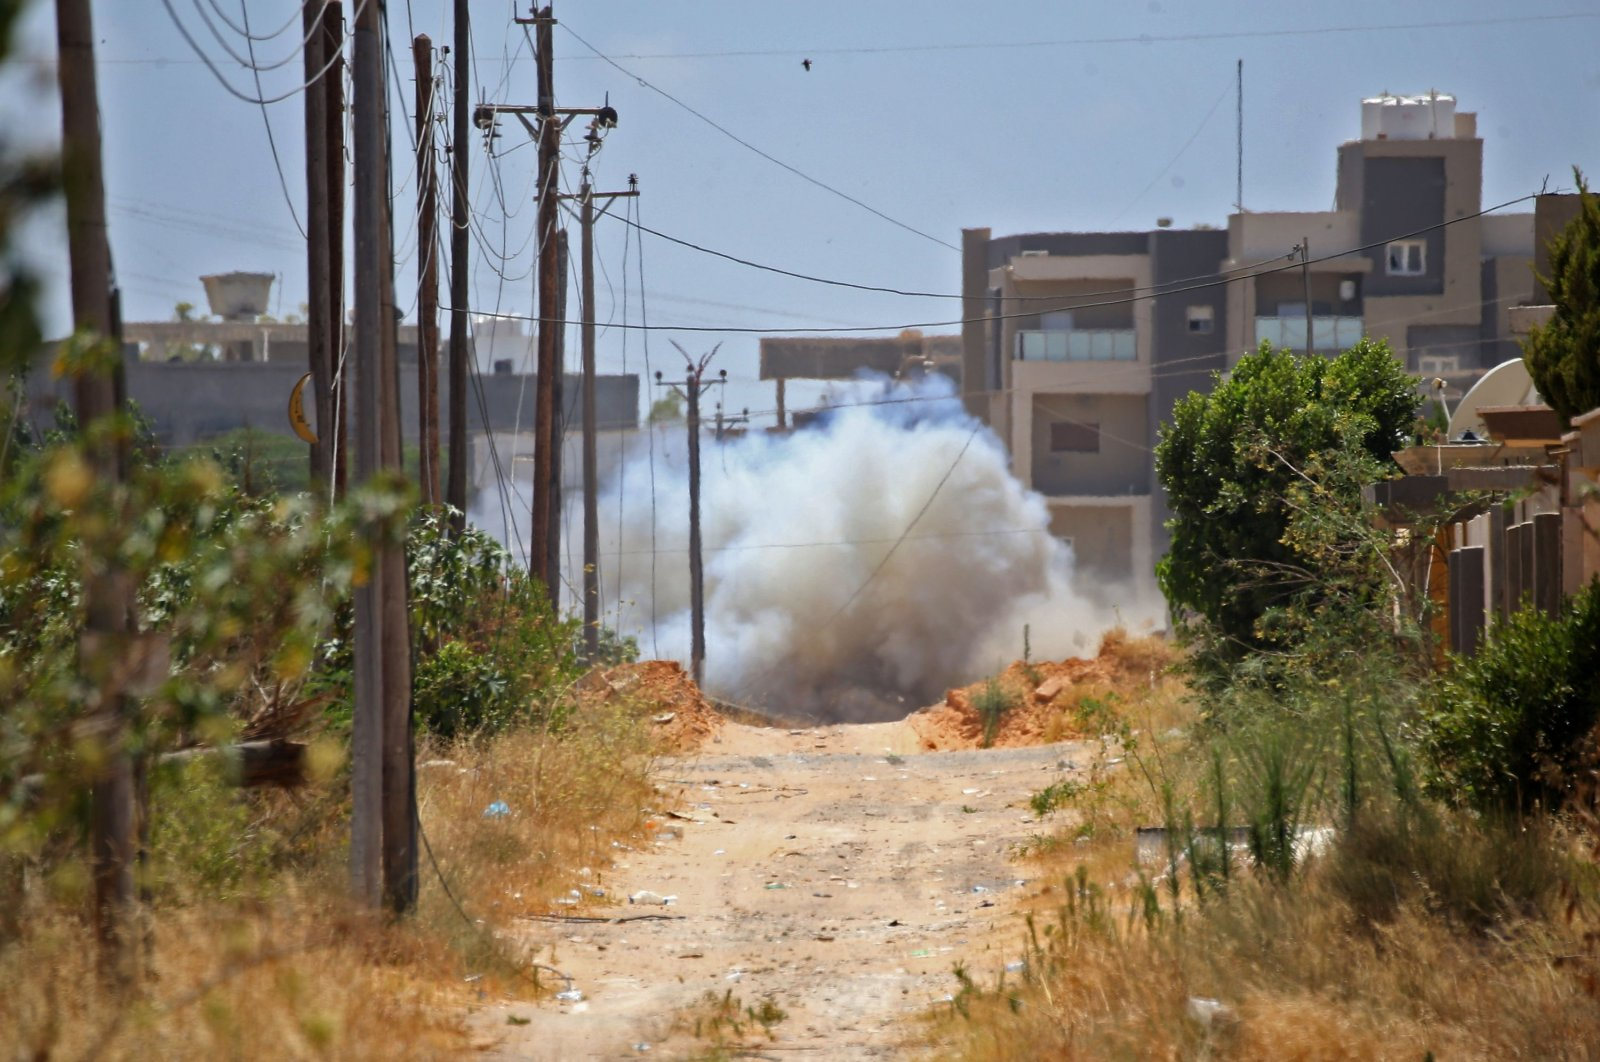 A land mine is destroyed in a controlled explosion during a Turkish demining operation in the Salah al-Din area, south of the capital Tripoli, Libya, June 15, 2020. (AFP Photo)